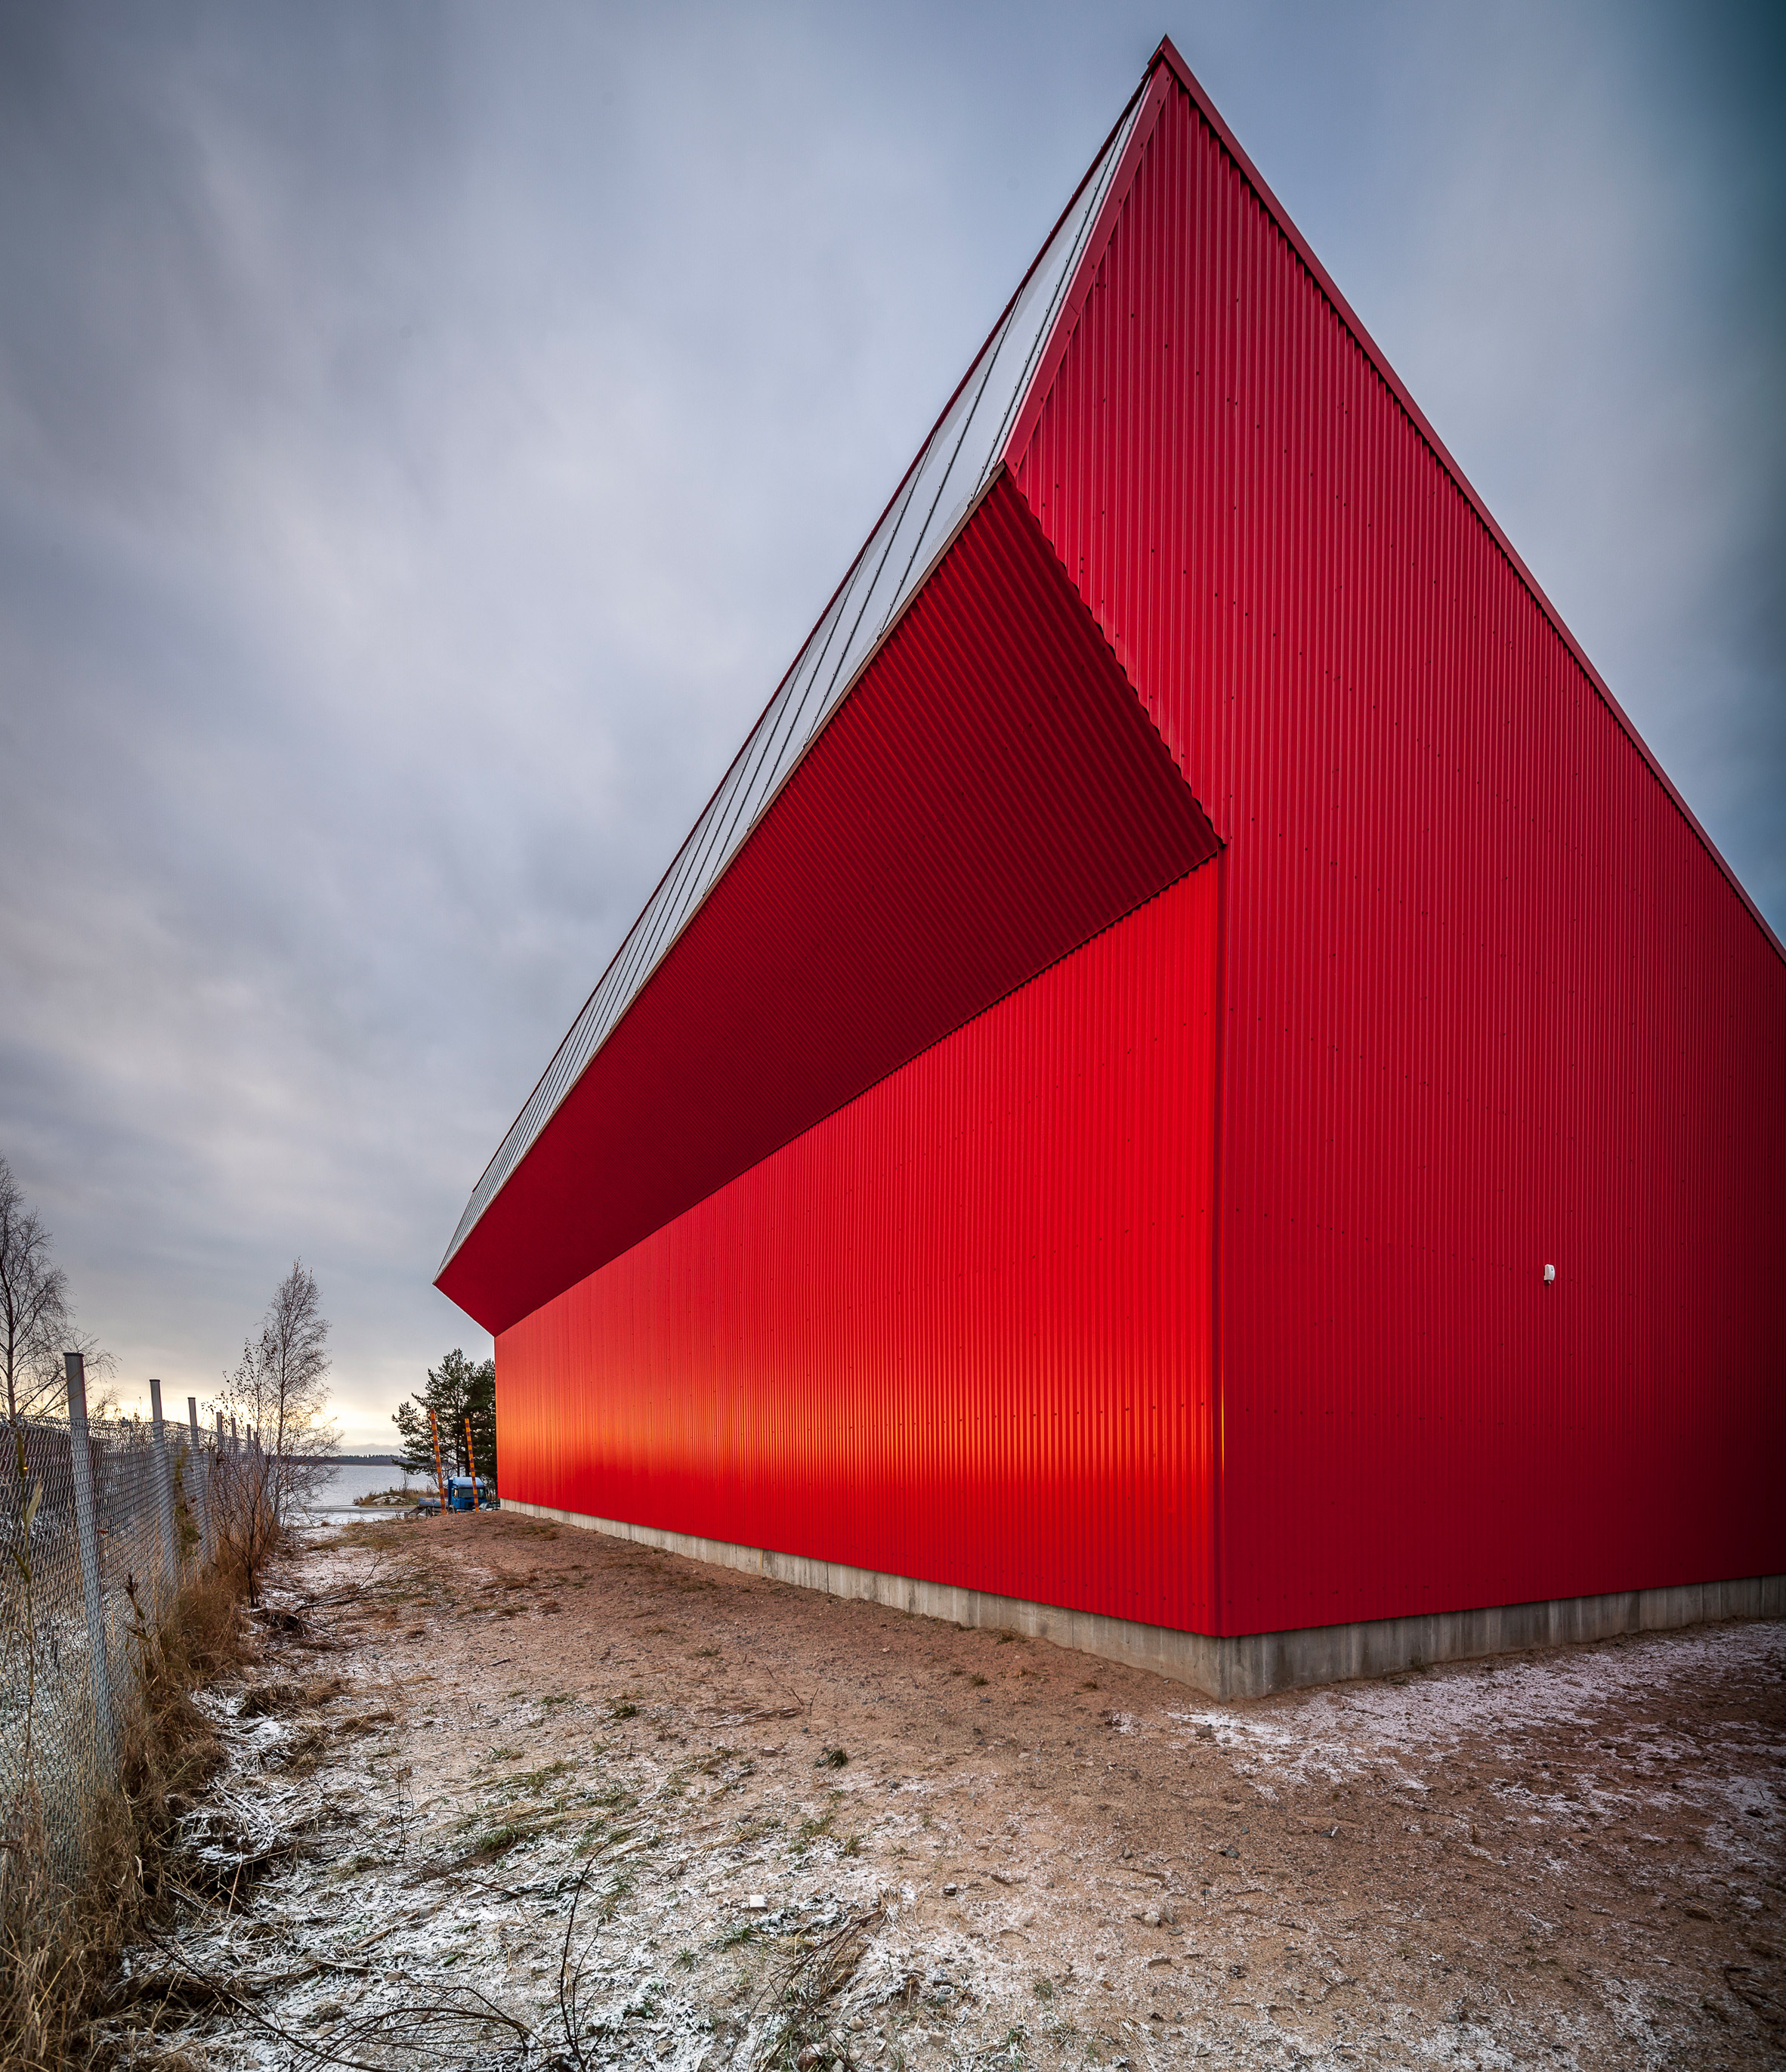 Oil-spill recovery unit in Finland is illuminated by angled clerestory window